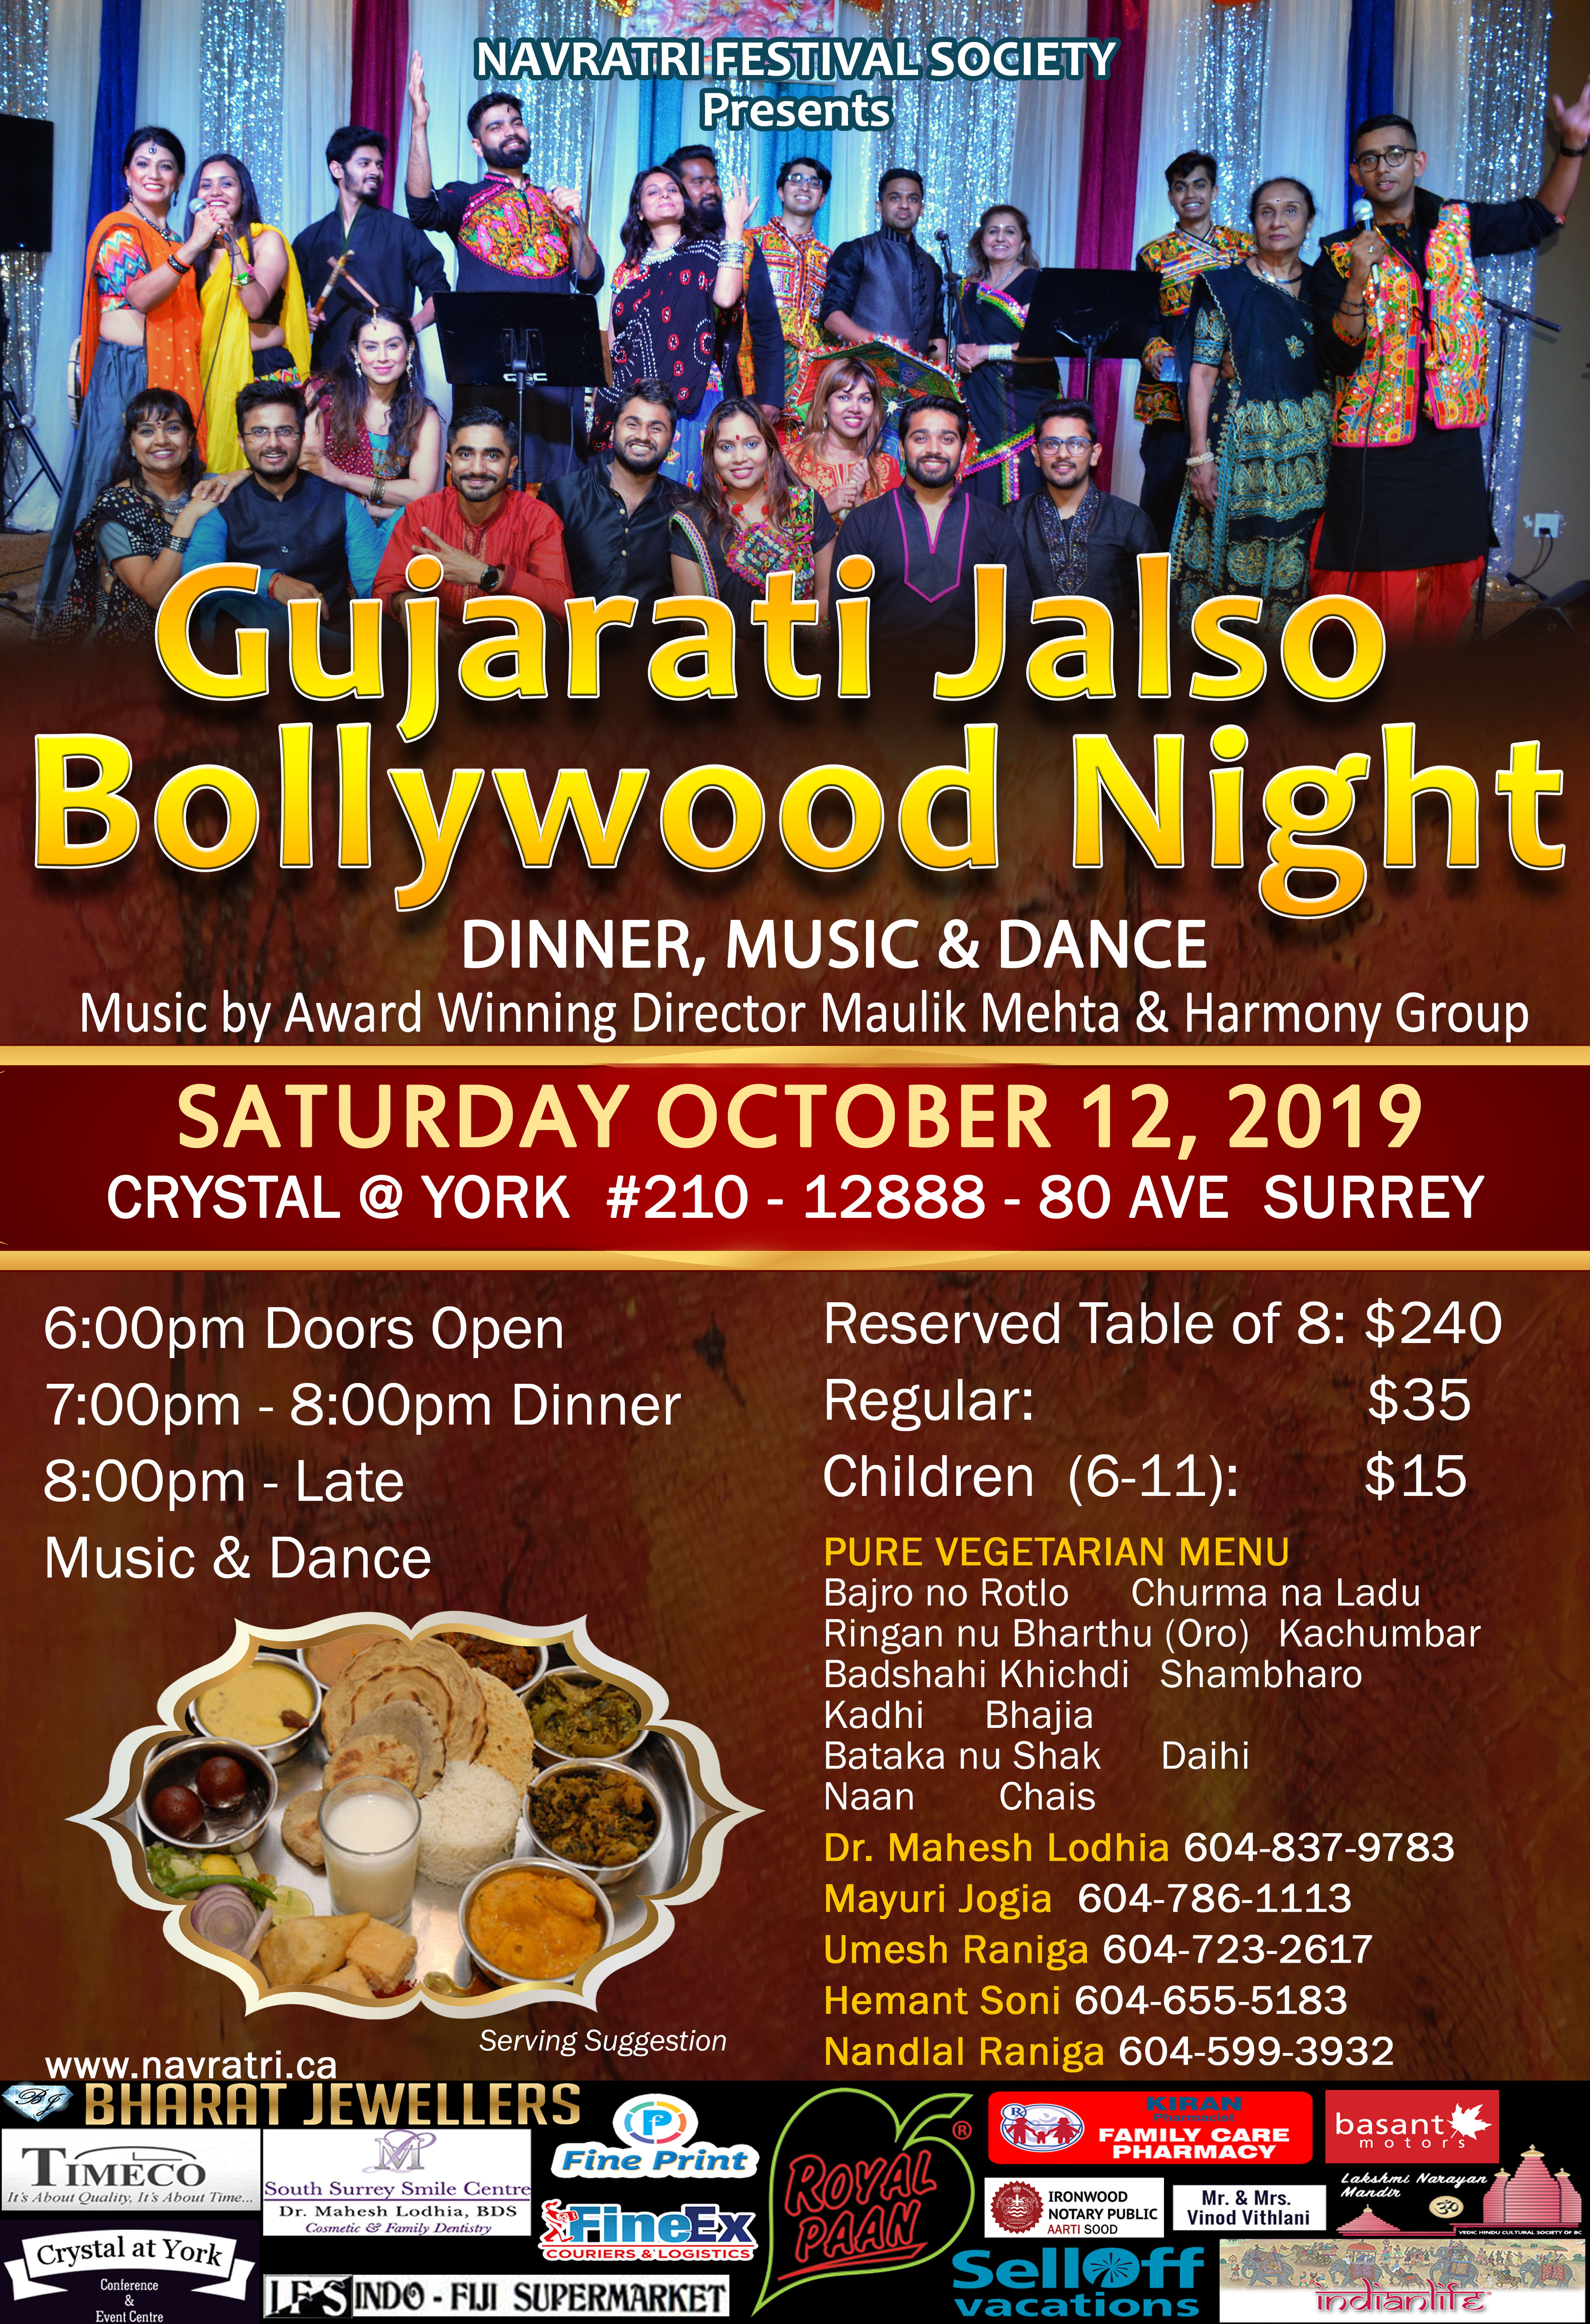 gujarati-jalso-bollywood-night-2019w